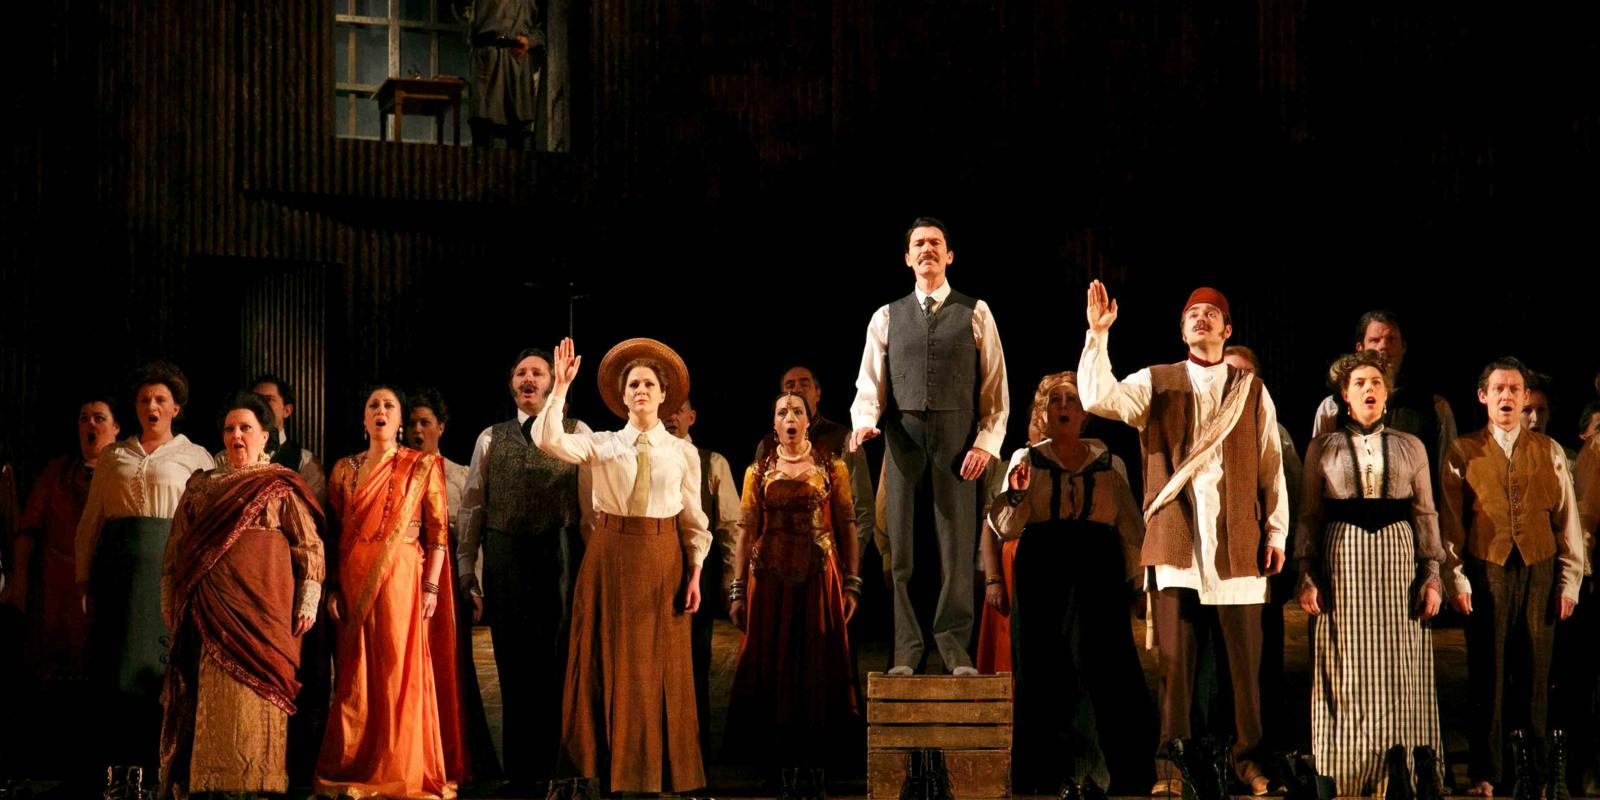 An image of Alan Oke, Clare Eggington, Nicholas Masters and members of the ENO Chorus in Phelim McDermott's 2013 production of Satyagraha